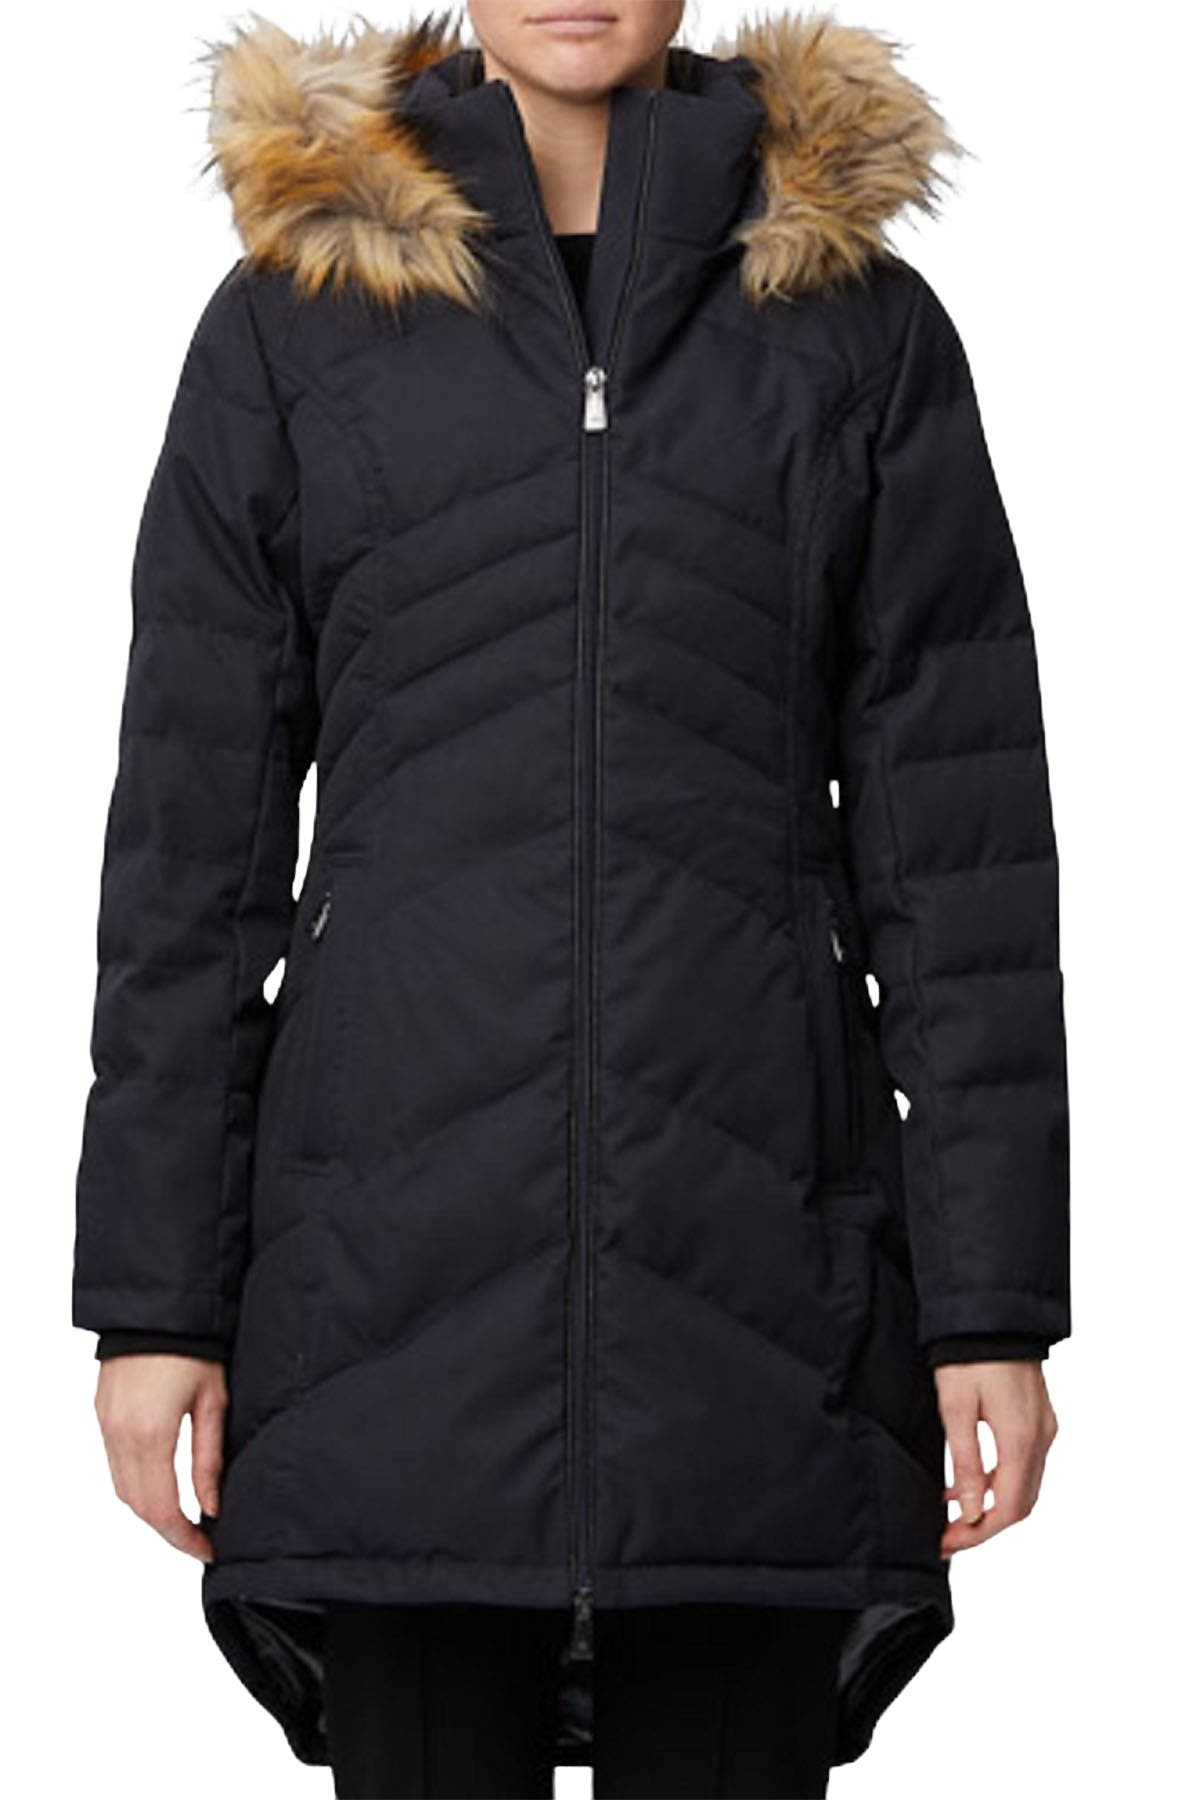 Image of Rainforest Oxford Nylon Quilted Faux Fur Thermoluxe Parka